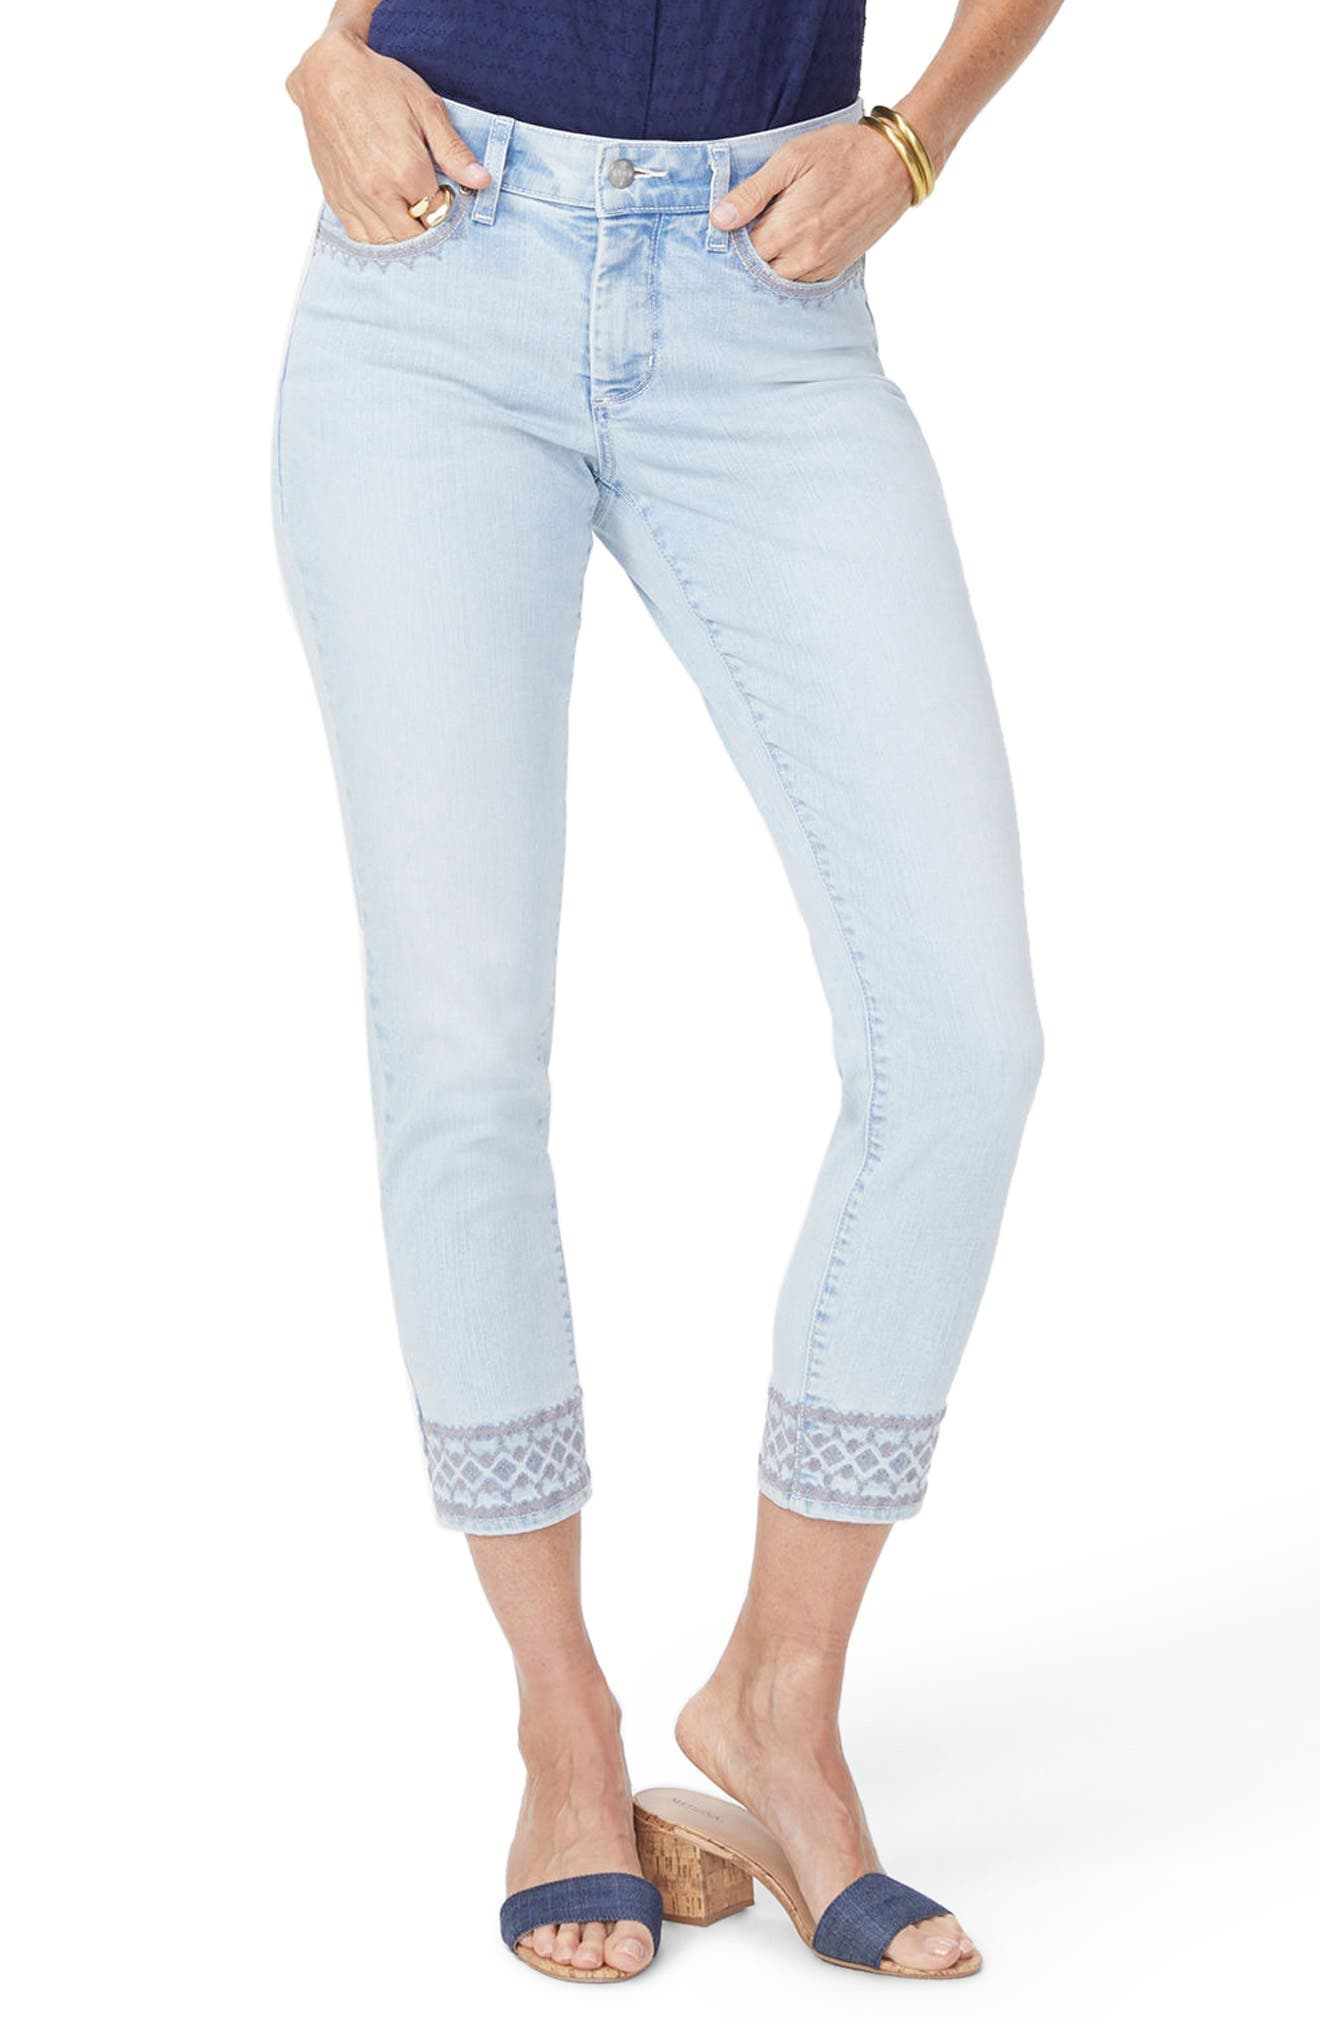 Ami Embroidered Border Ankle Skinny Jeans,                         Main,                         color, Palm Desert